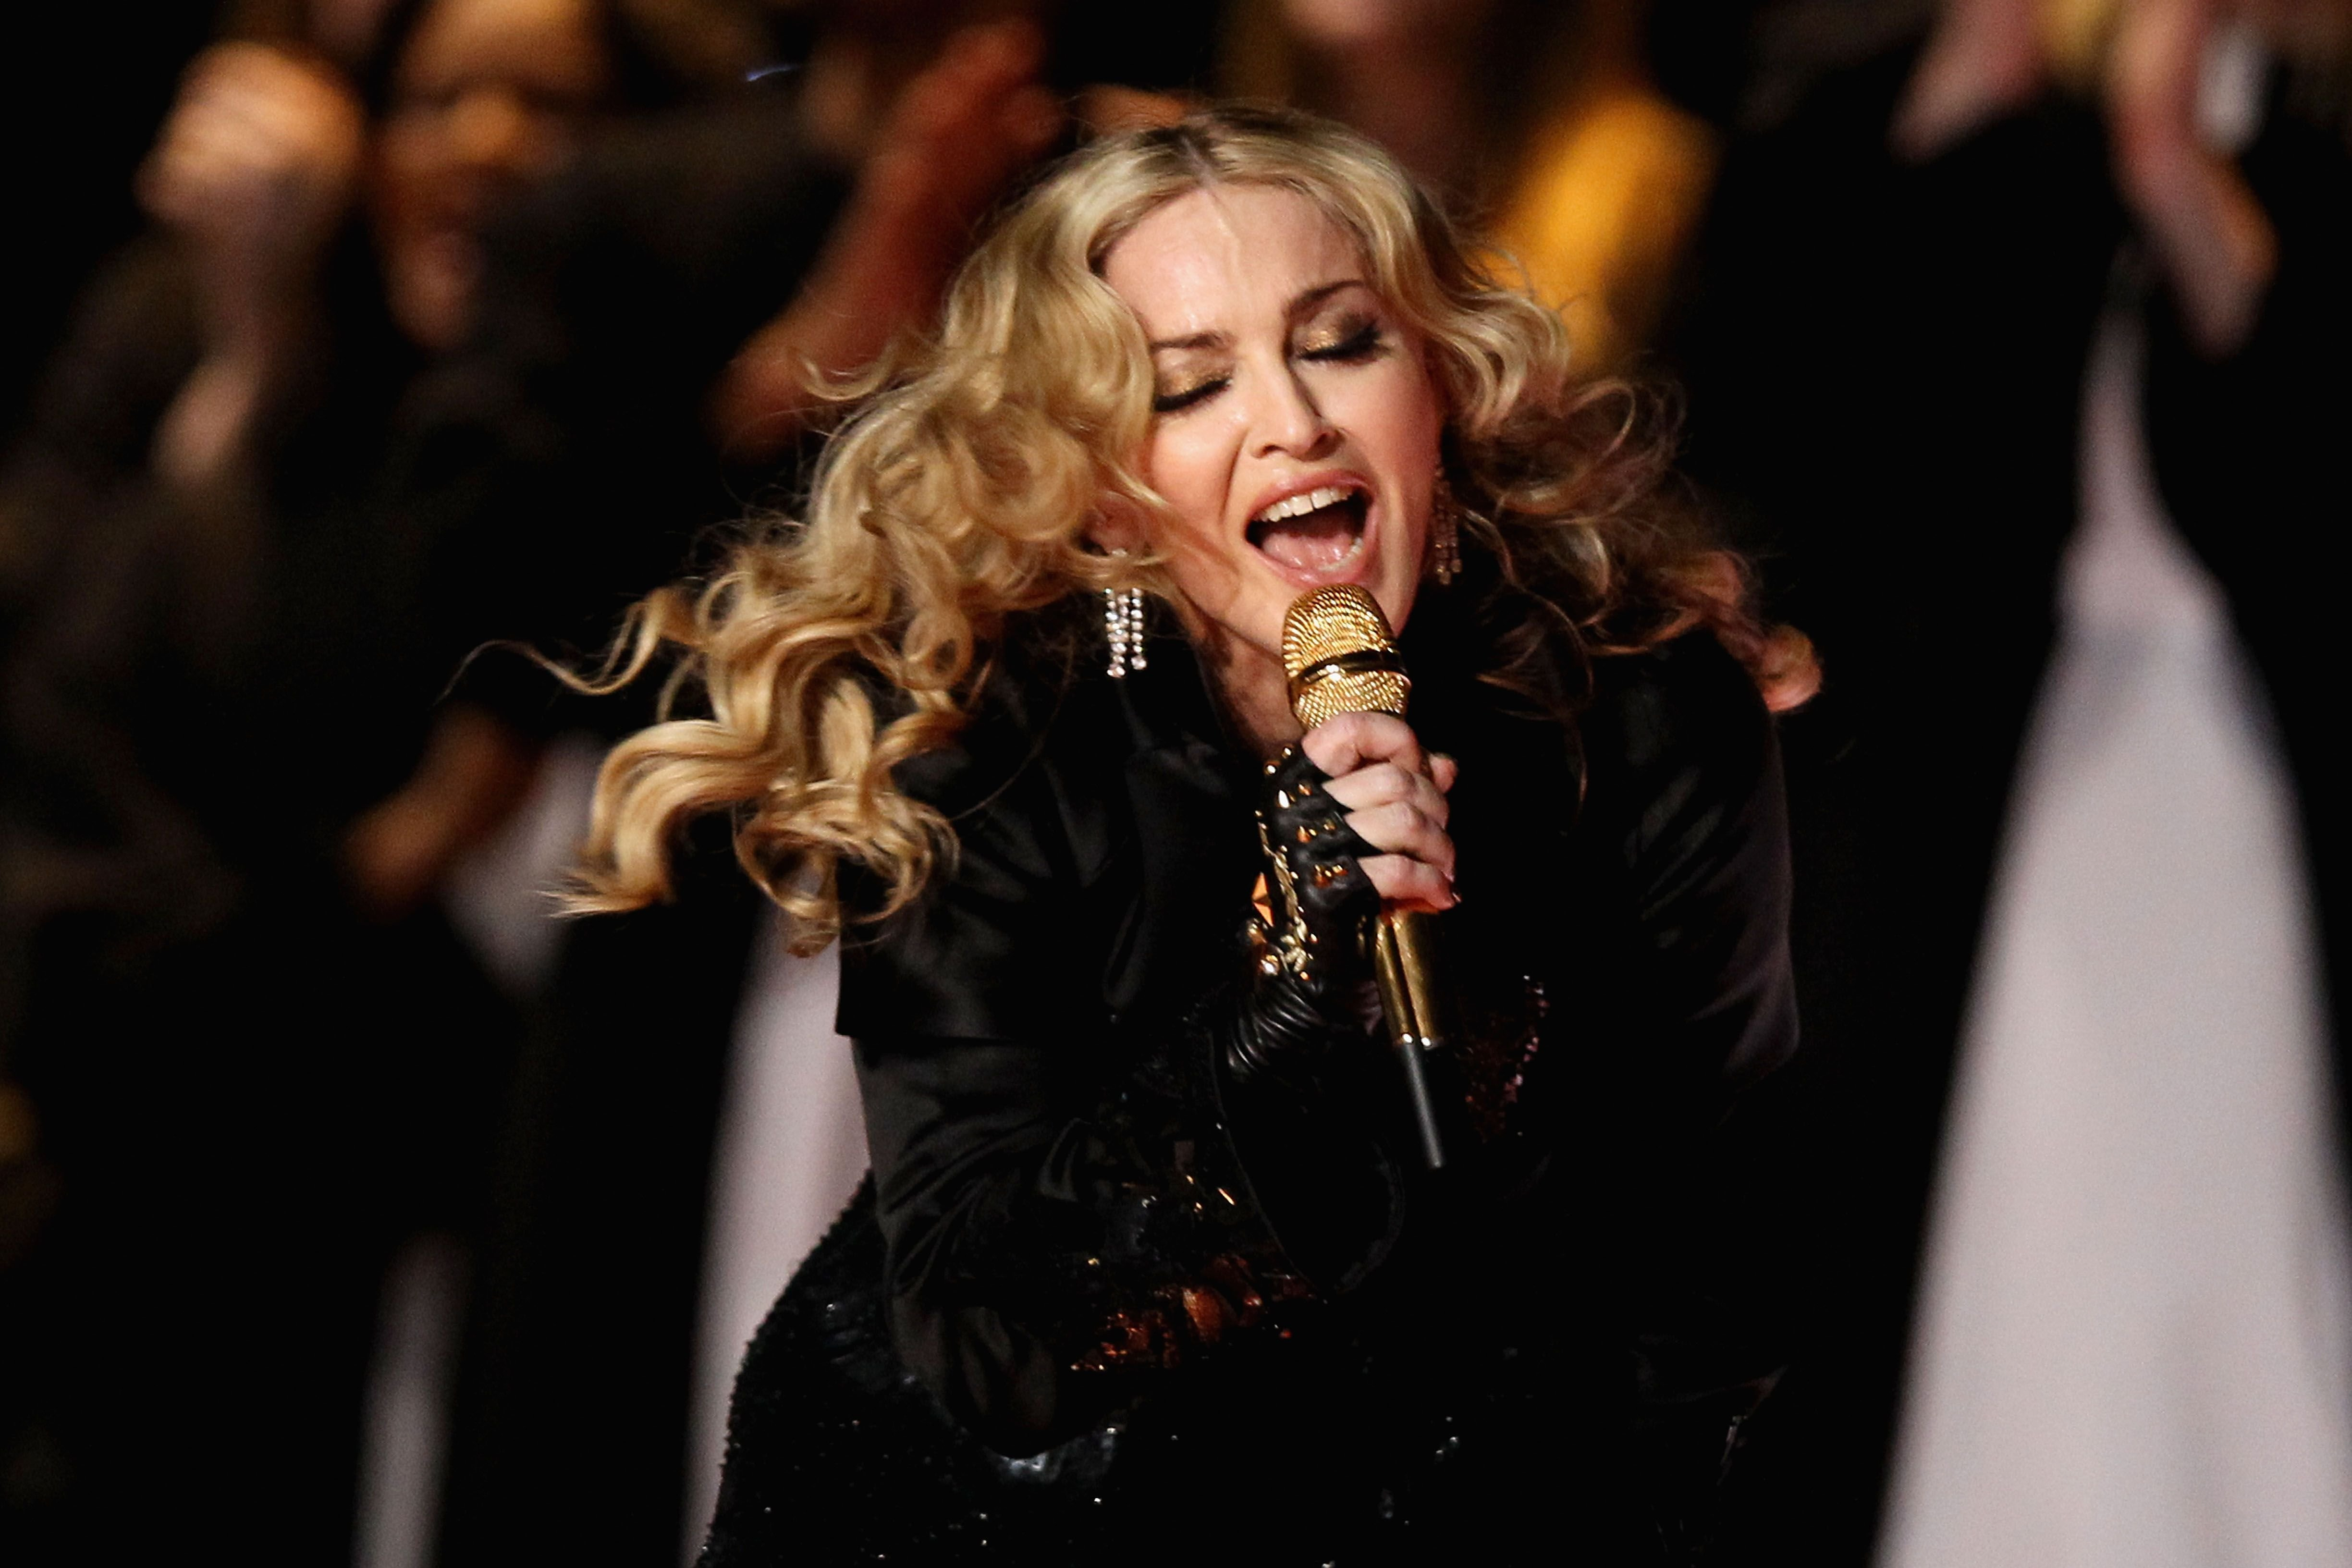 Madonna performing at the Super Bowl Half Time in 2012 in Indianapolis, Indiana | Source: Getty Images